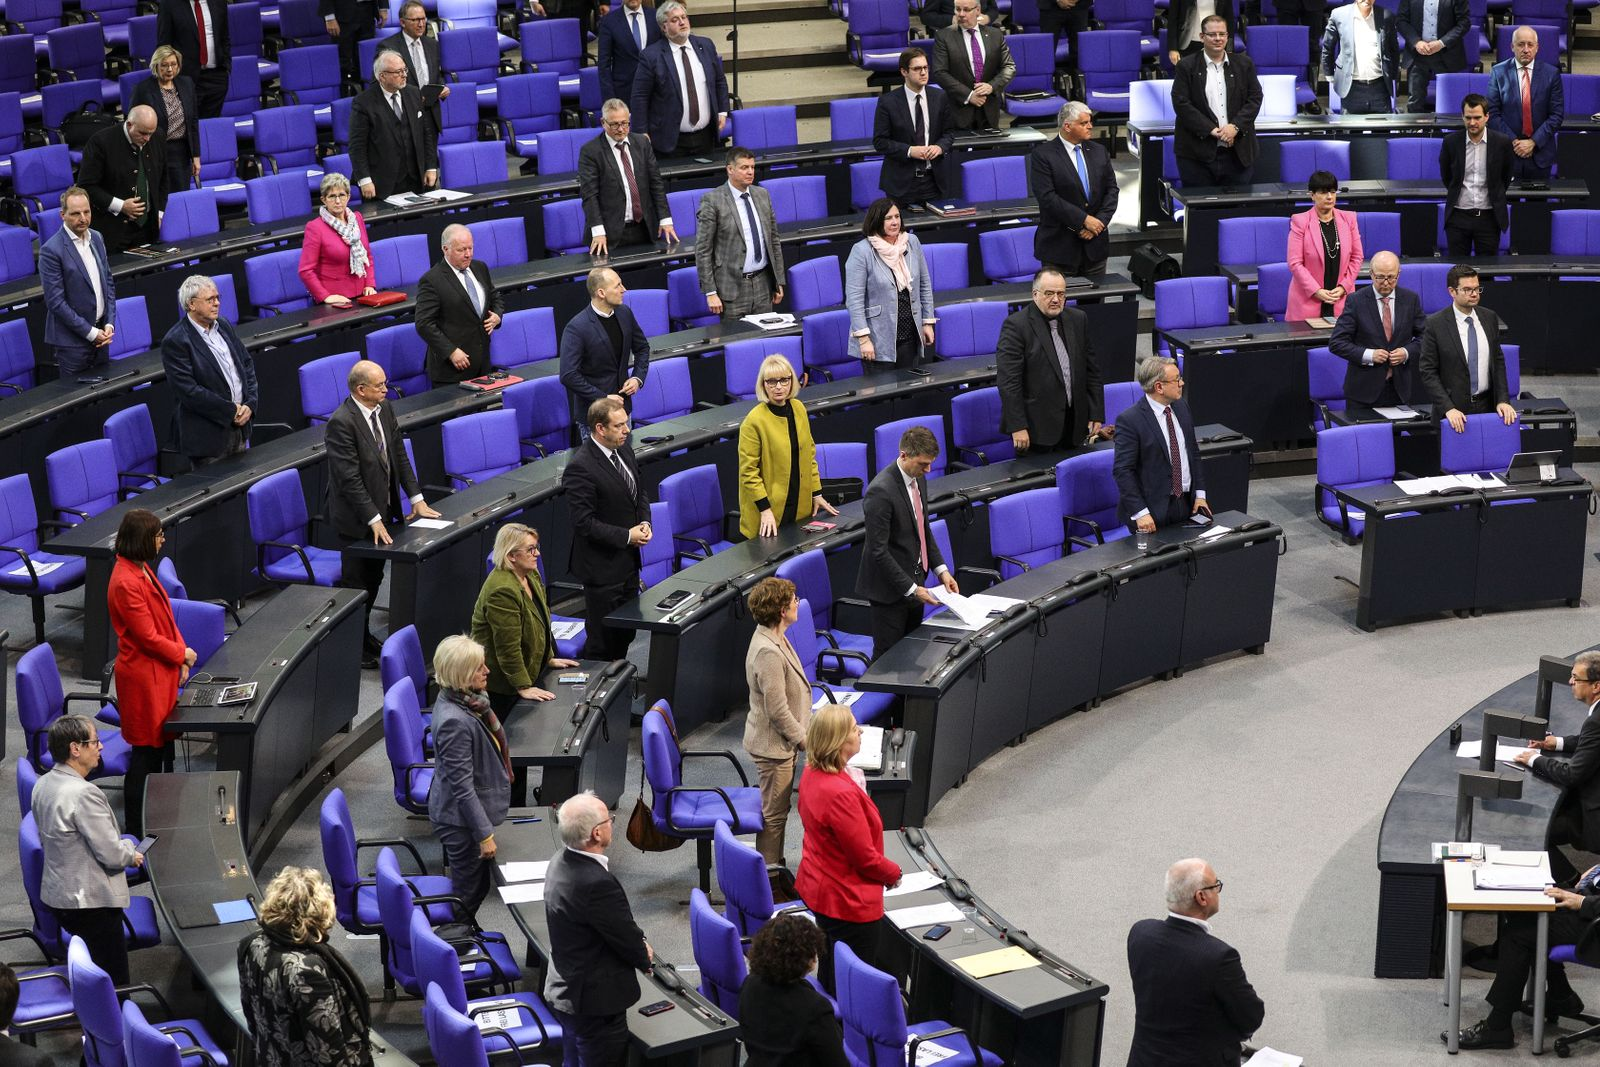 Bundestag session - Coping with the Corona Crisis, Berlin, Germany - 25 Mar 2020